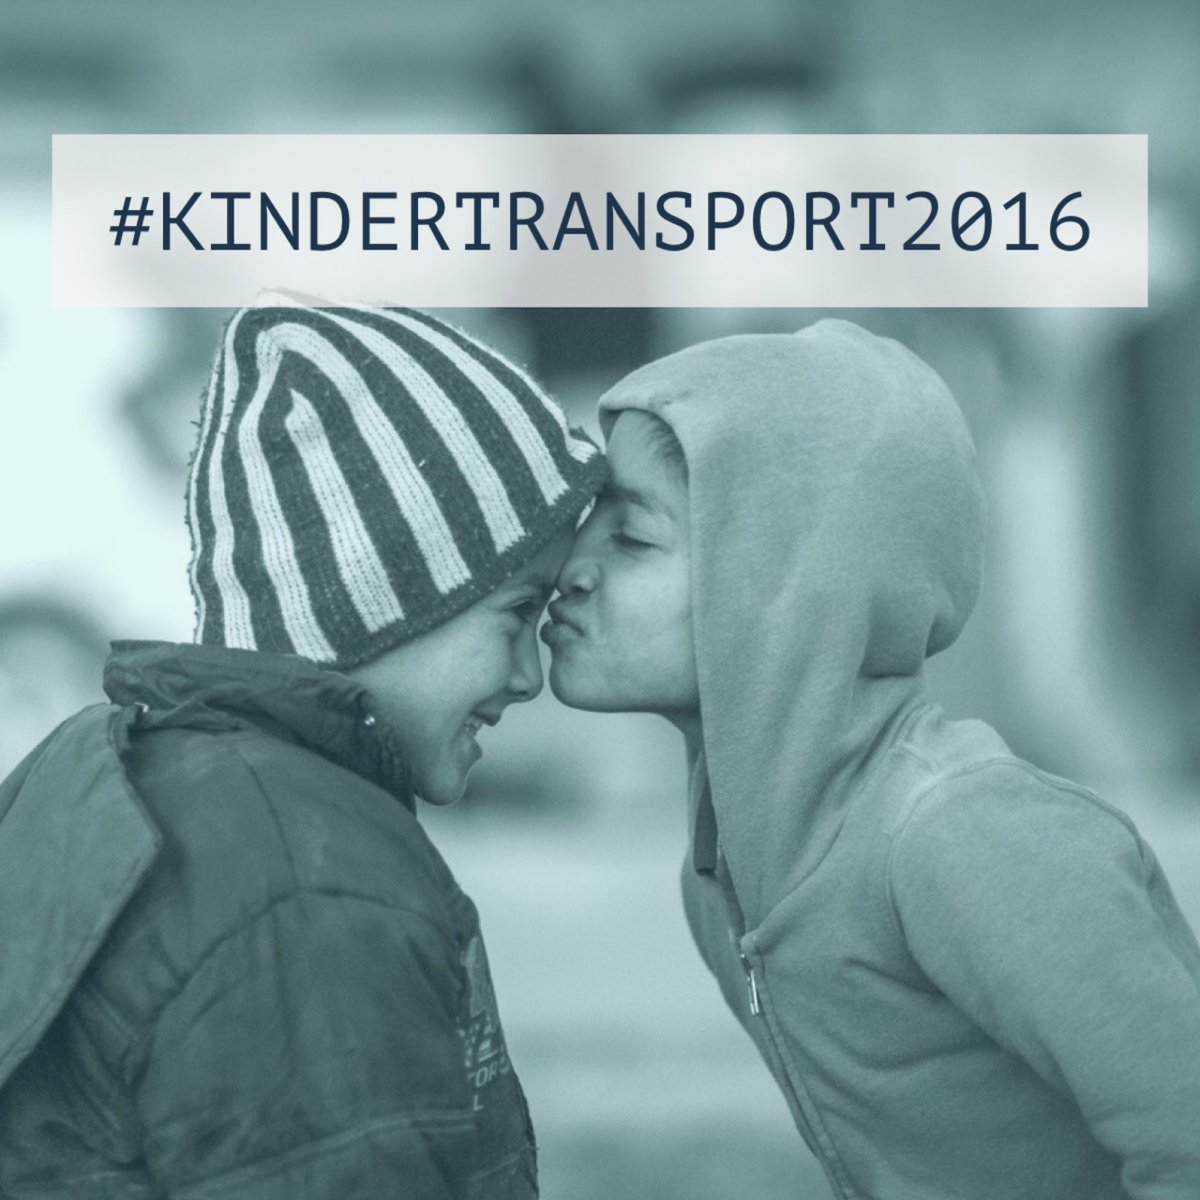 If you think the UK should help child refugees who've lost their parents,  please retweet #Kindertransport2016 https://t.co/mASztaIgc2